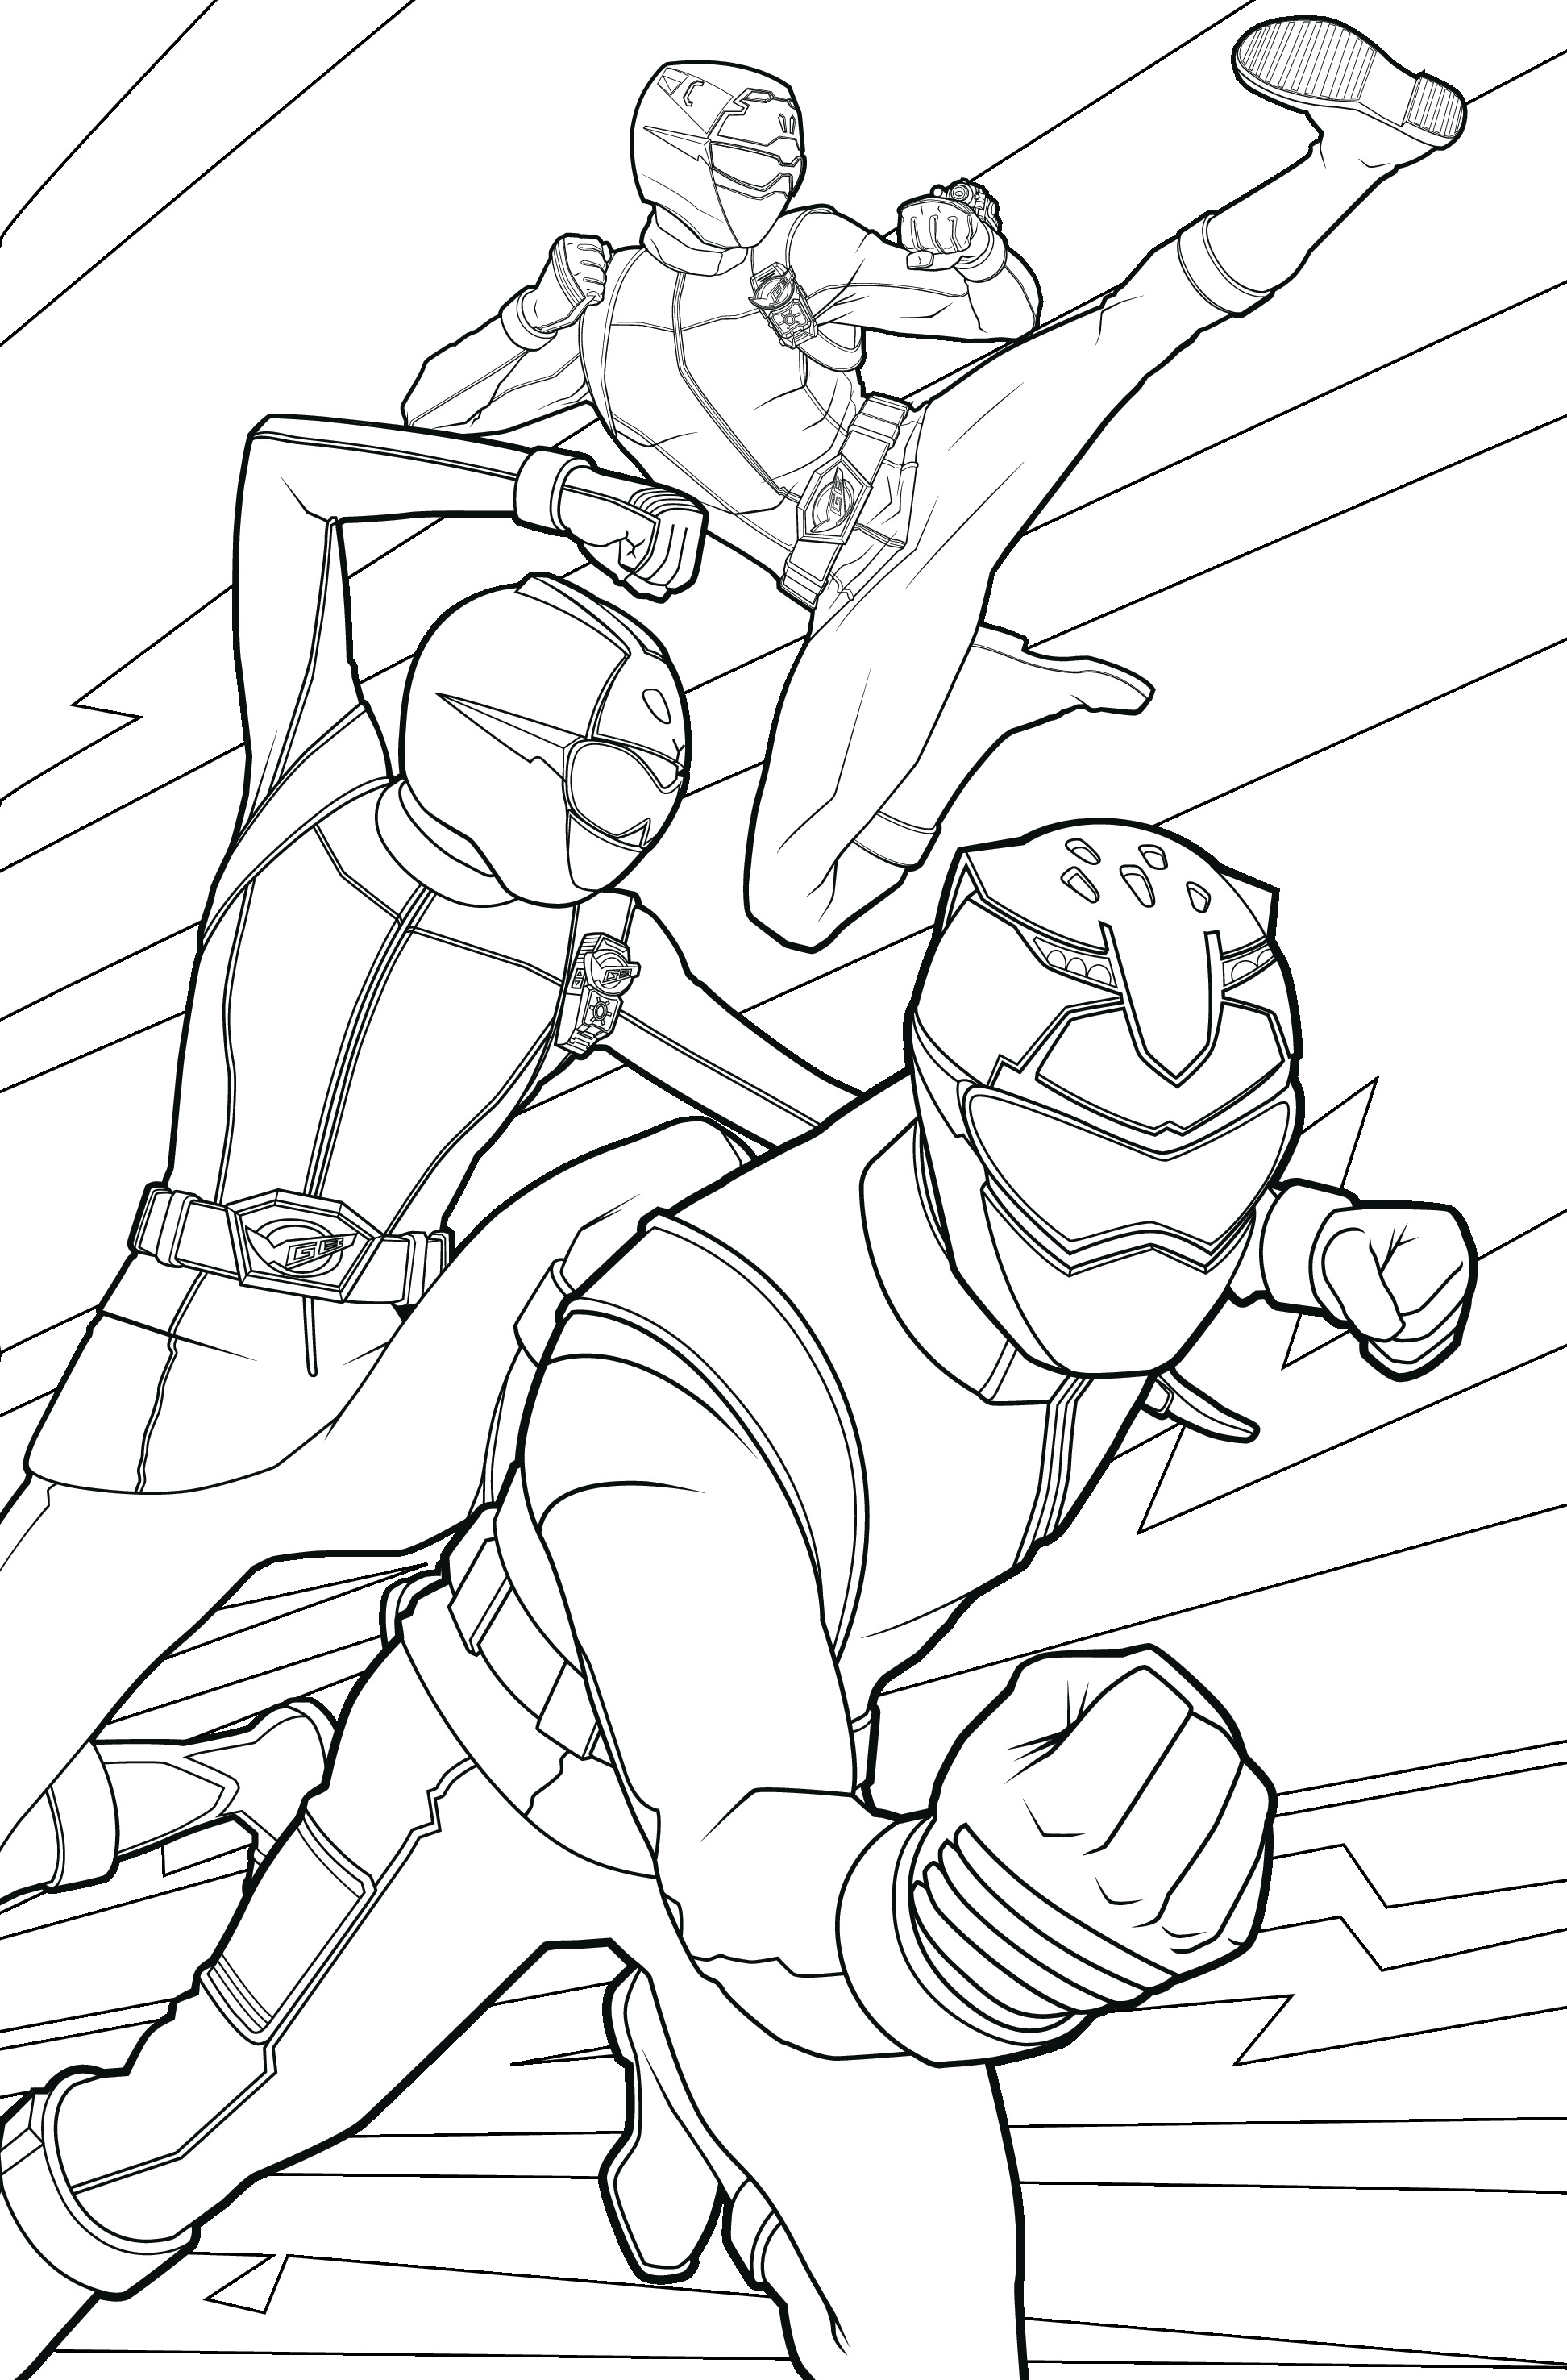 POWER RANGERS - Coloriage 3 Power Rangers 09